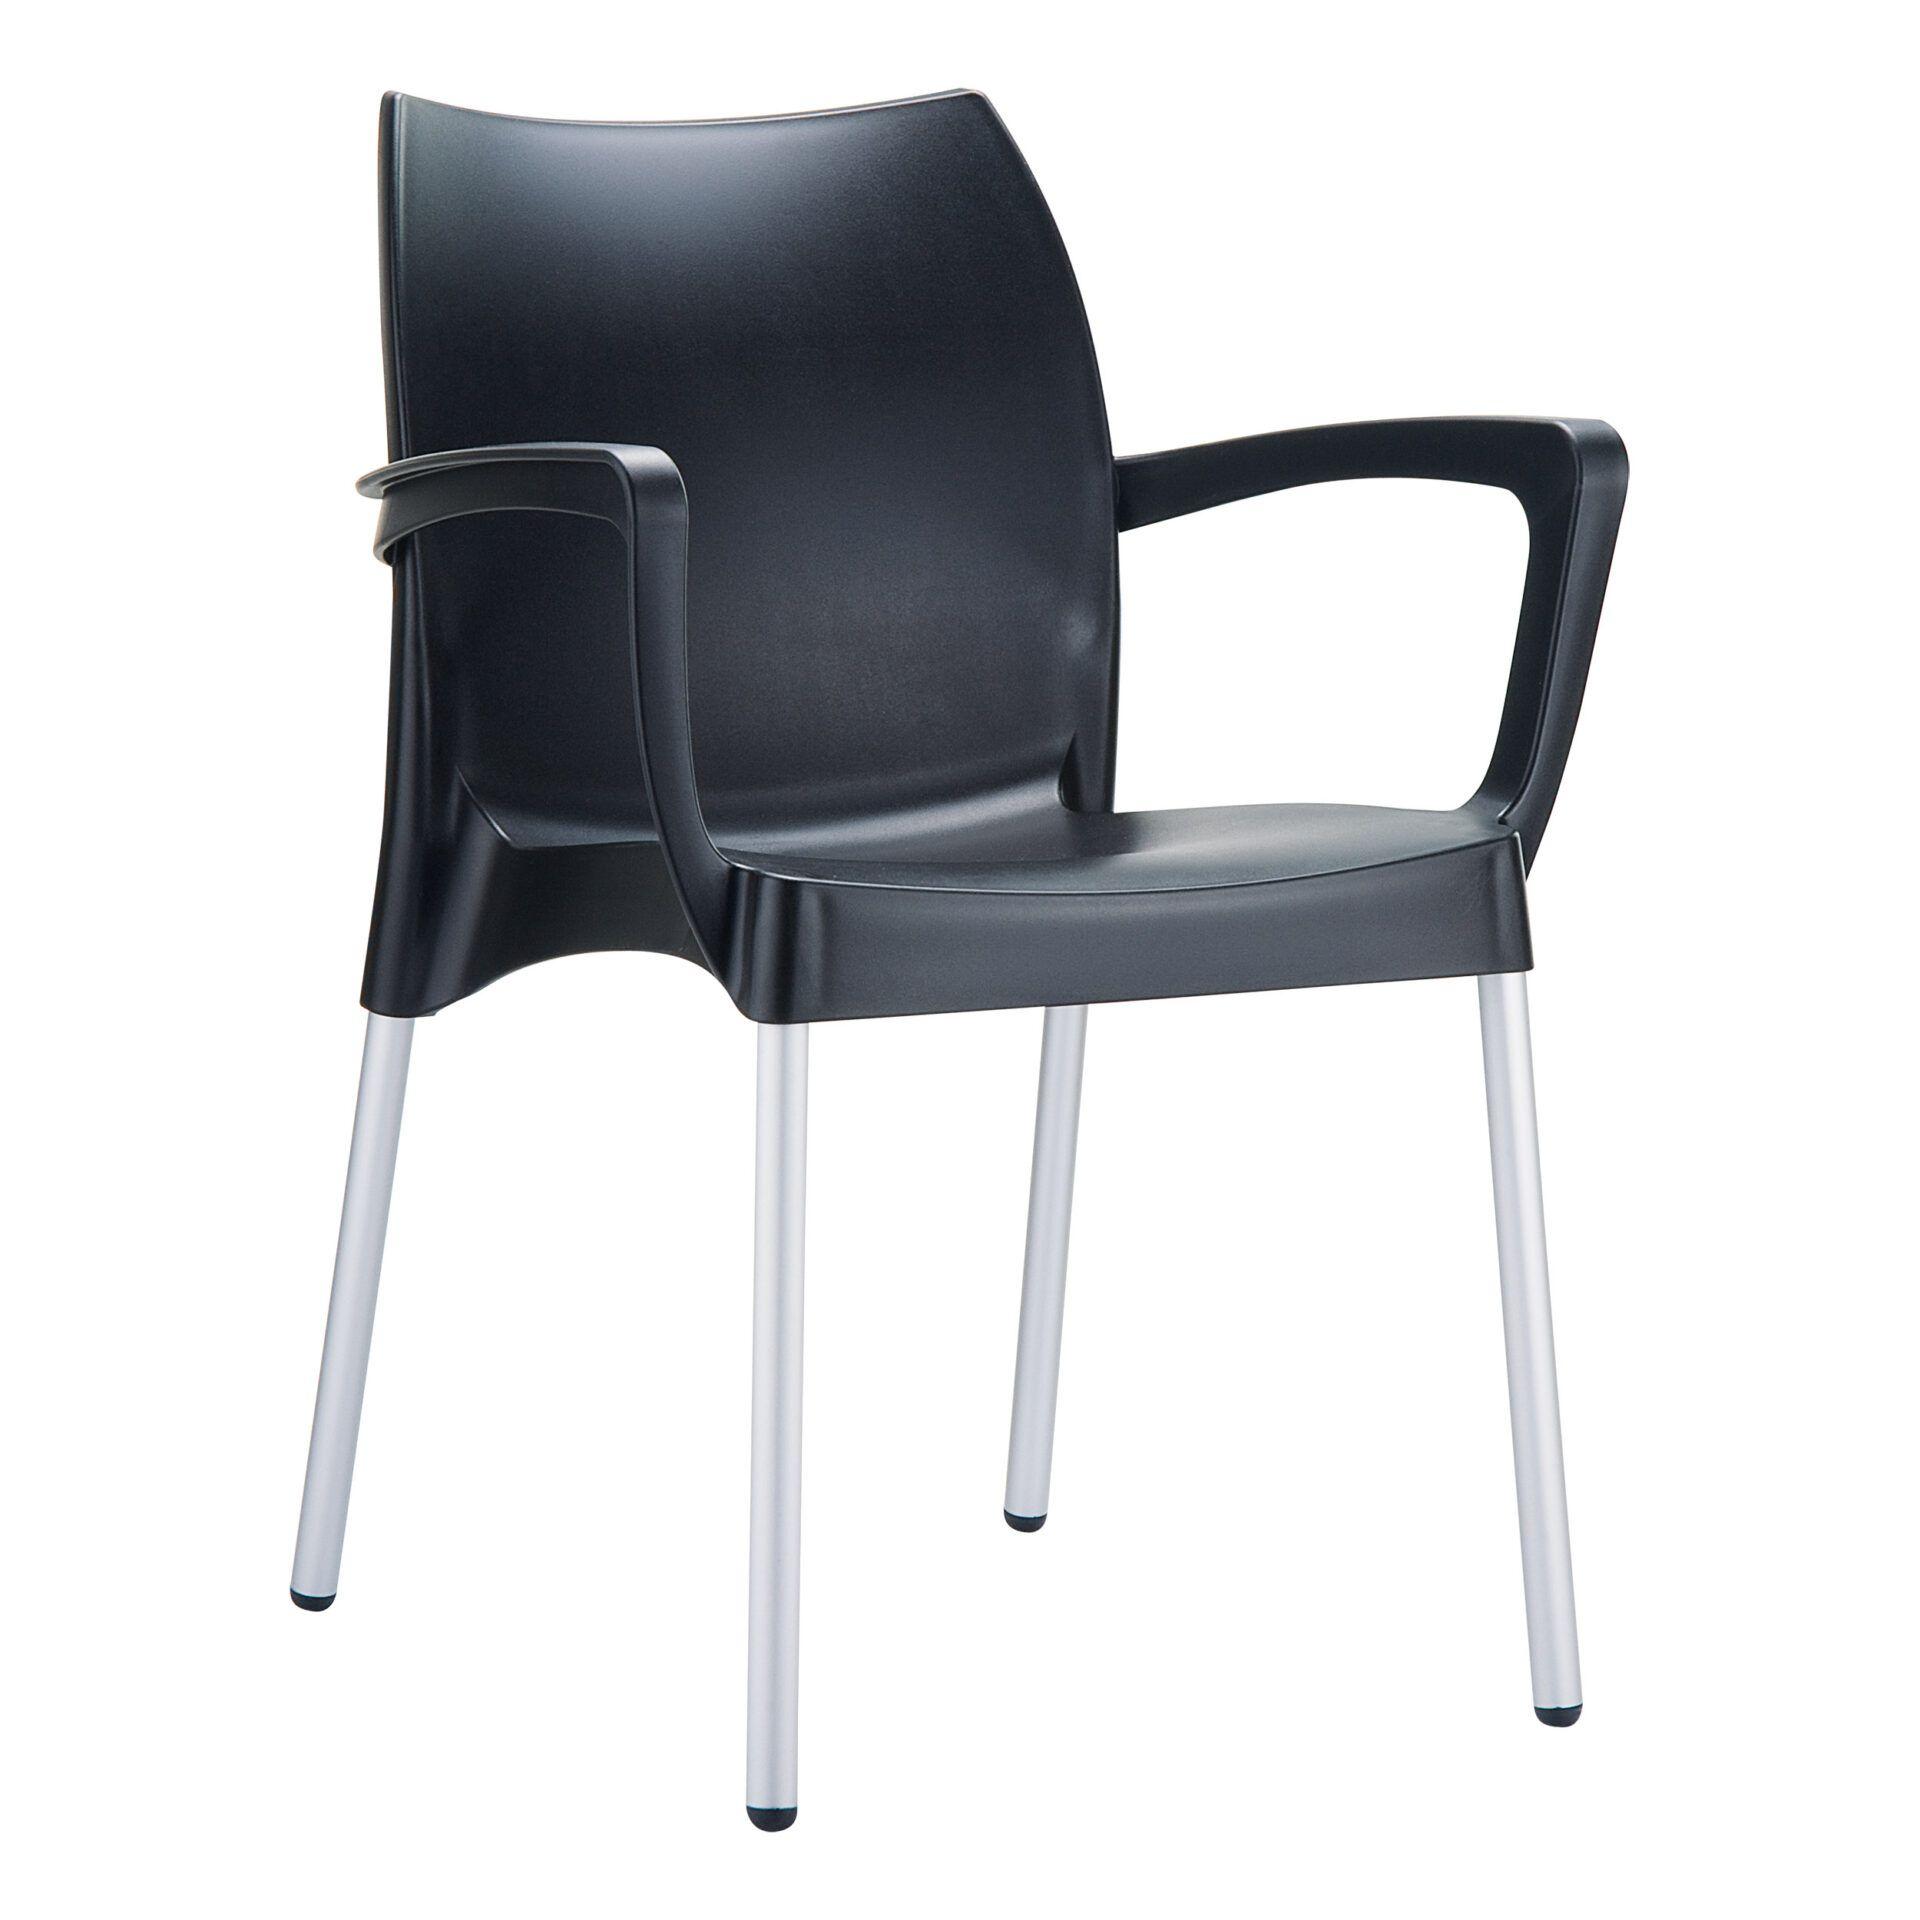 commercial polypropylene dolce chair black front side